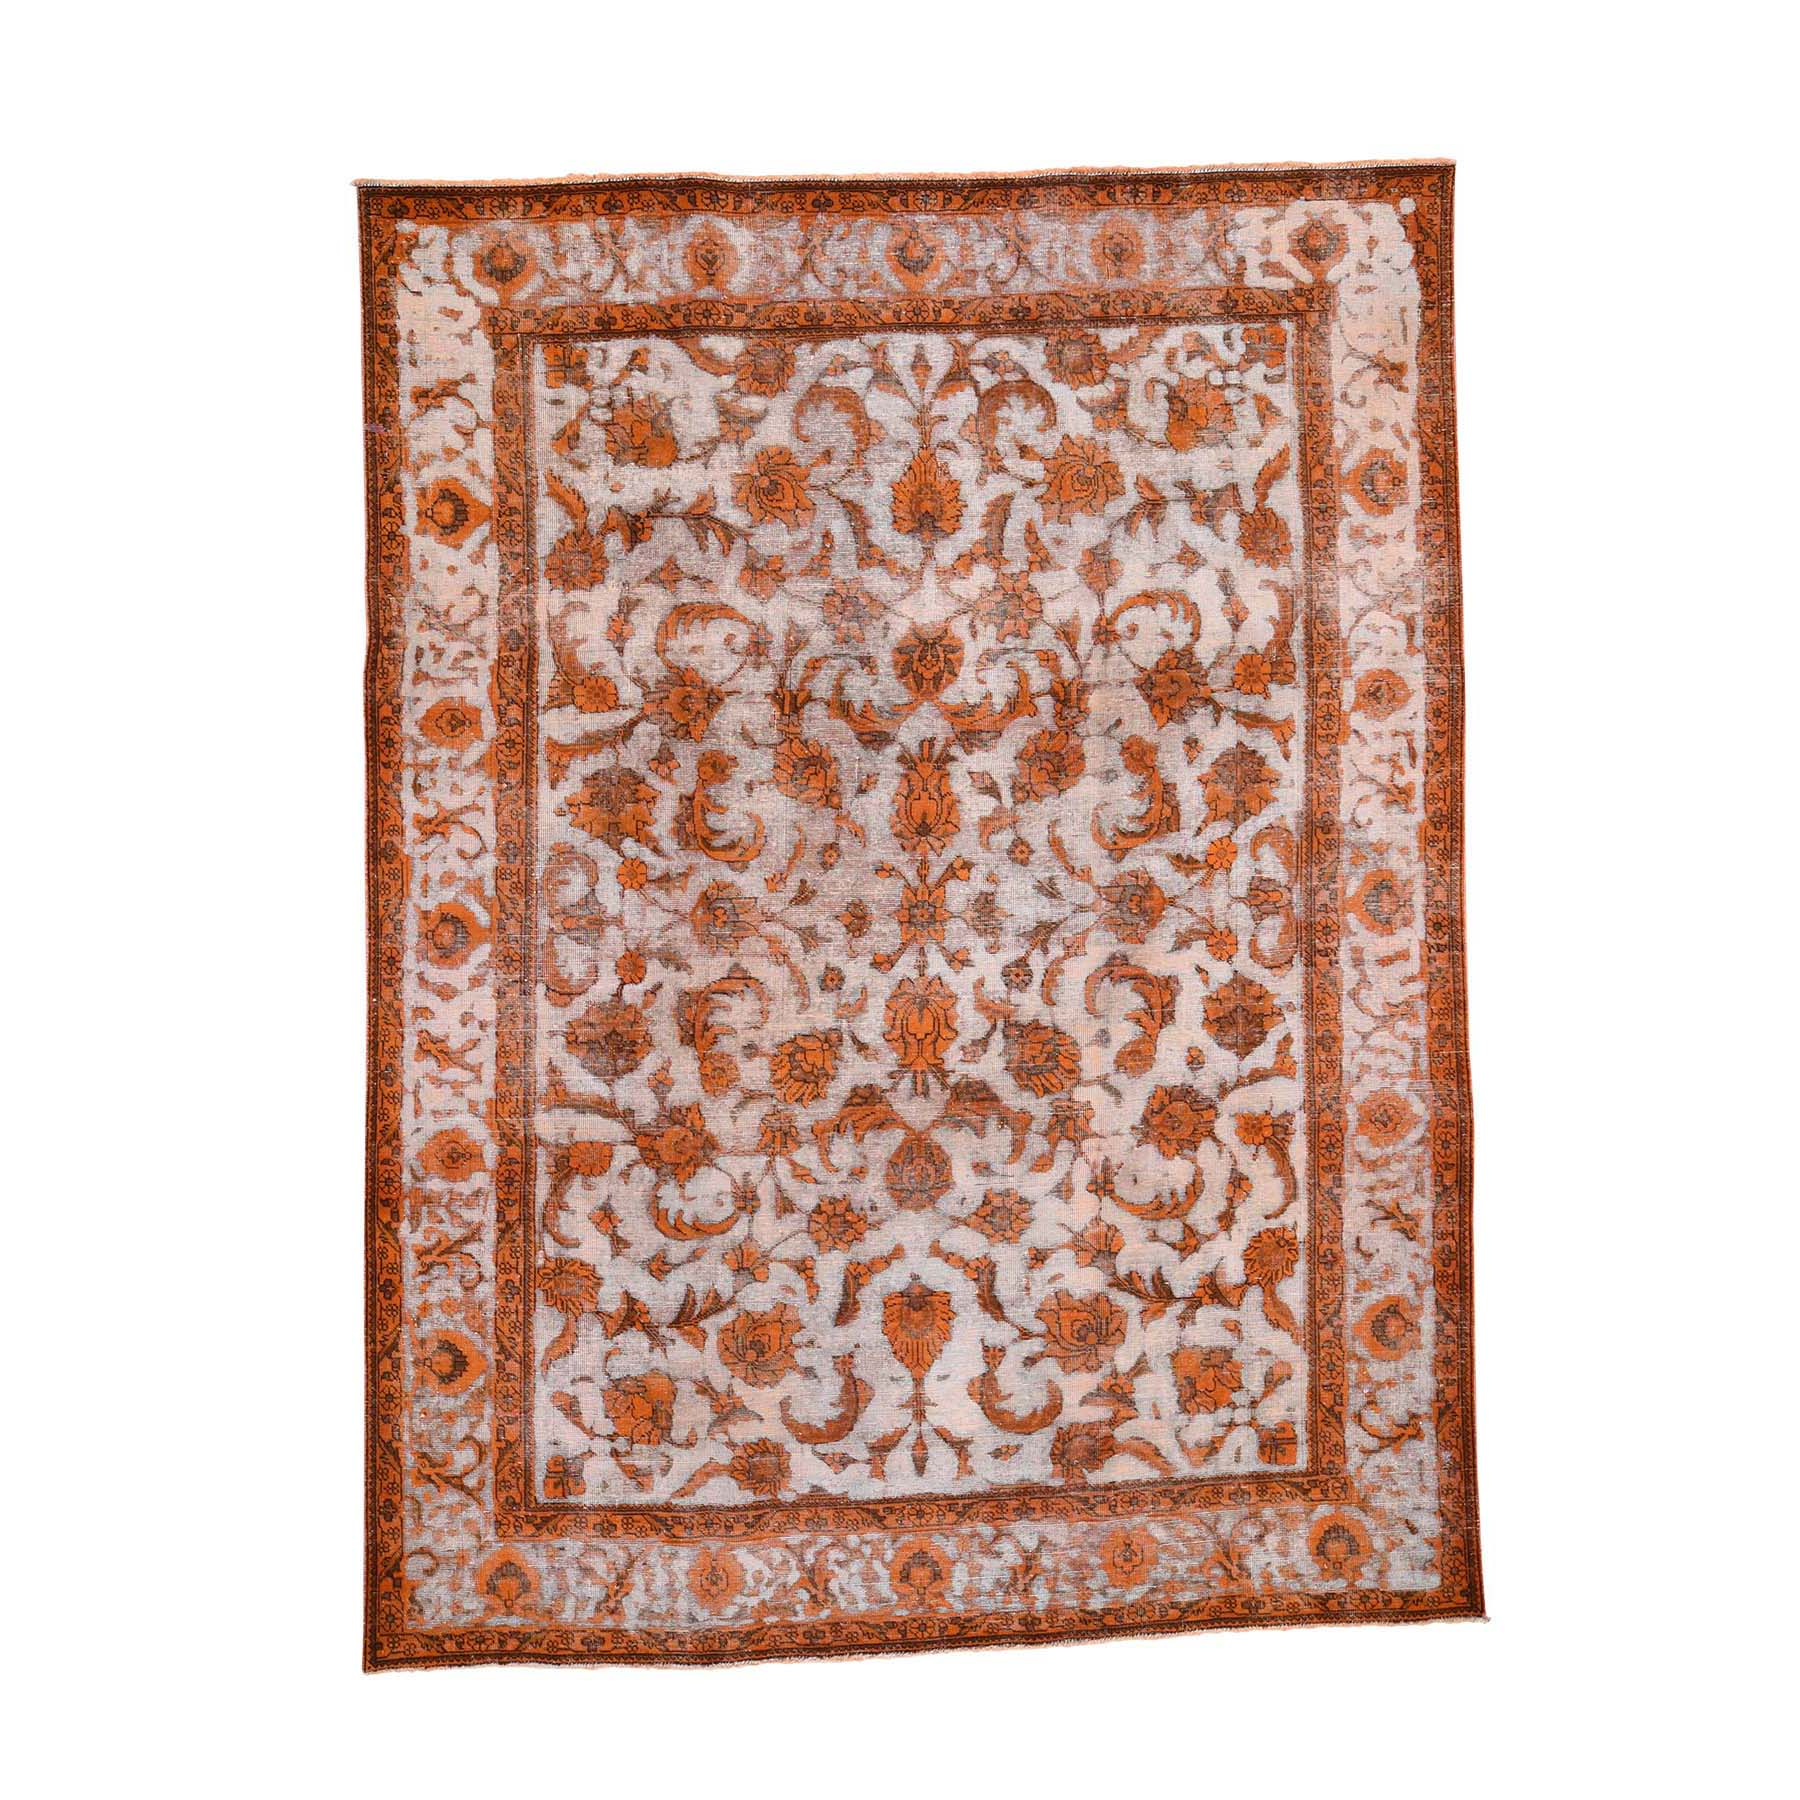 "8'1""X10'9"" Orange Overdyed Persian Tabriz Barjasta Vintage Hand-Knotted Oriental Rug moad60c9"